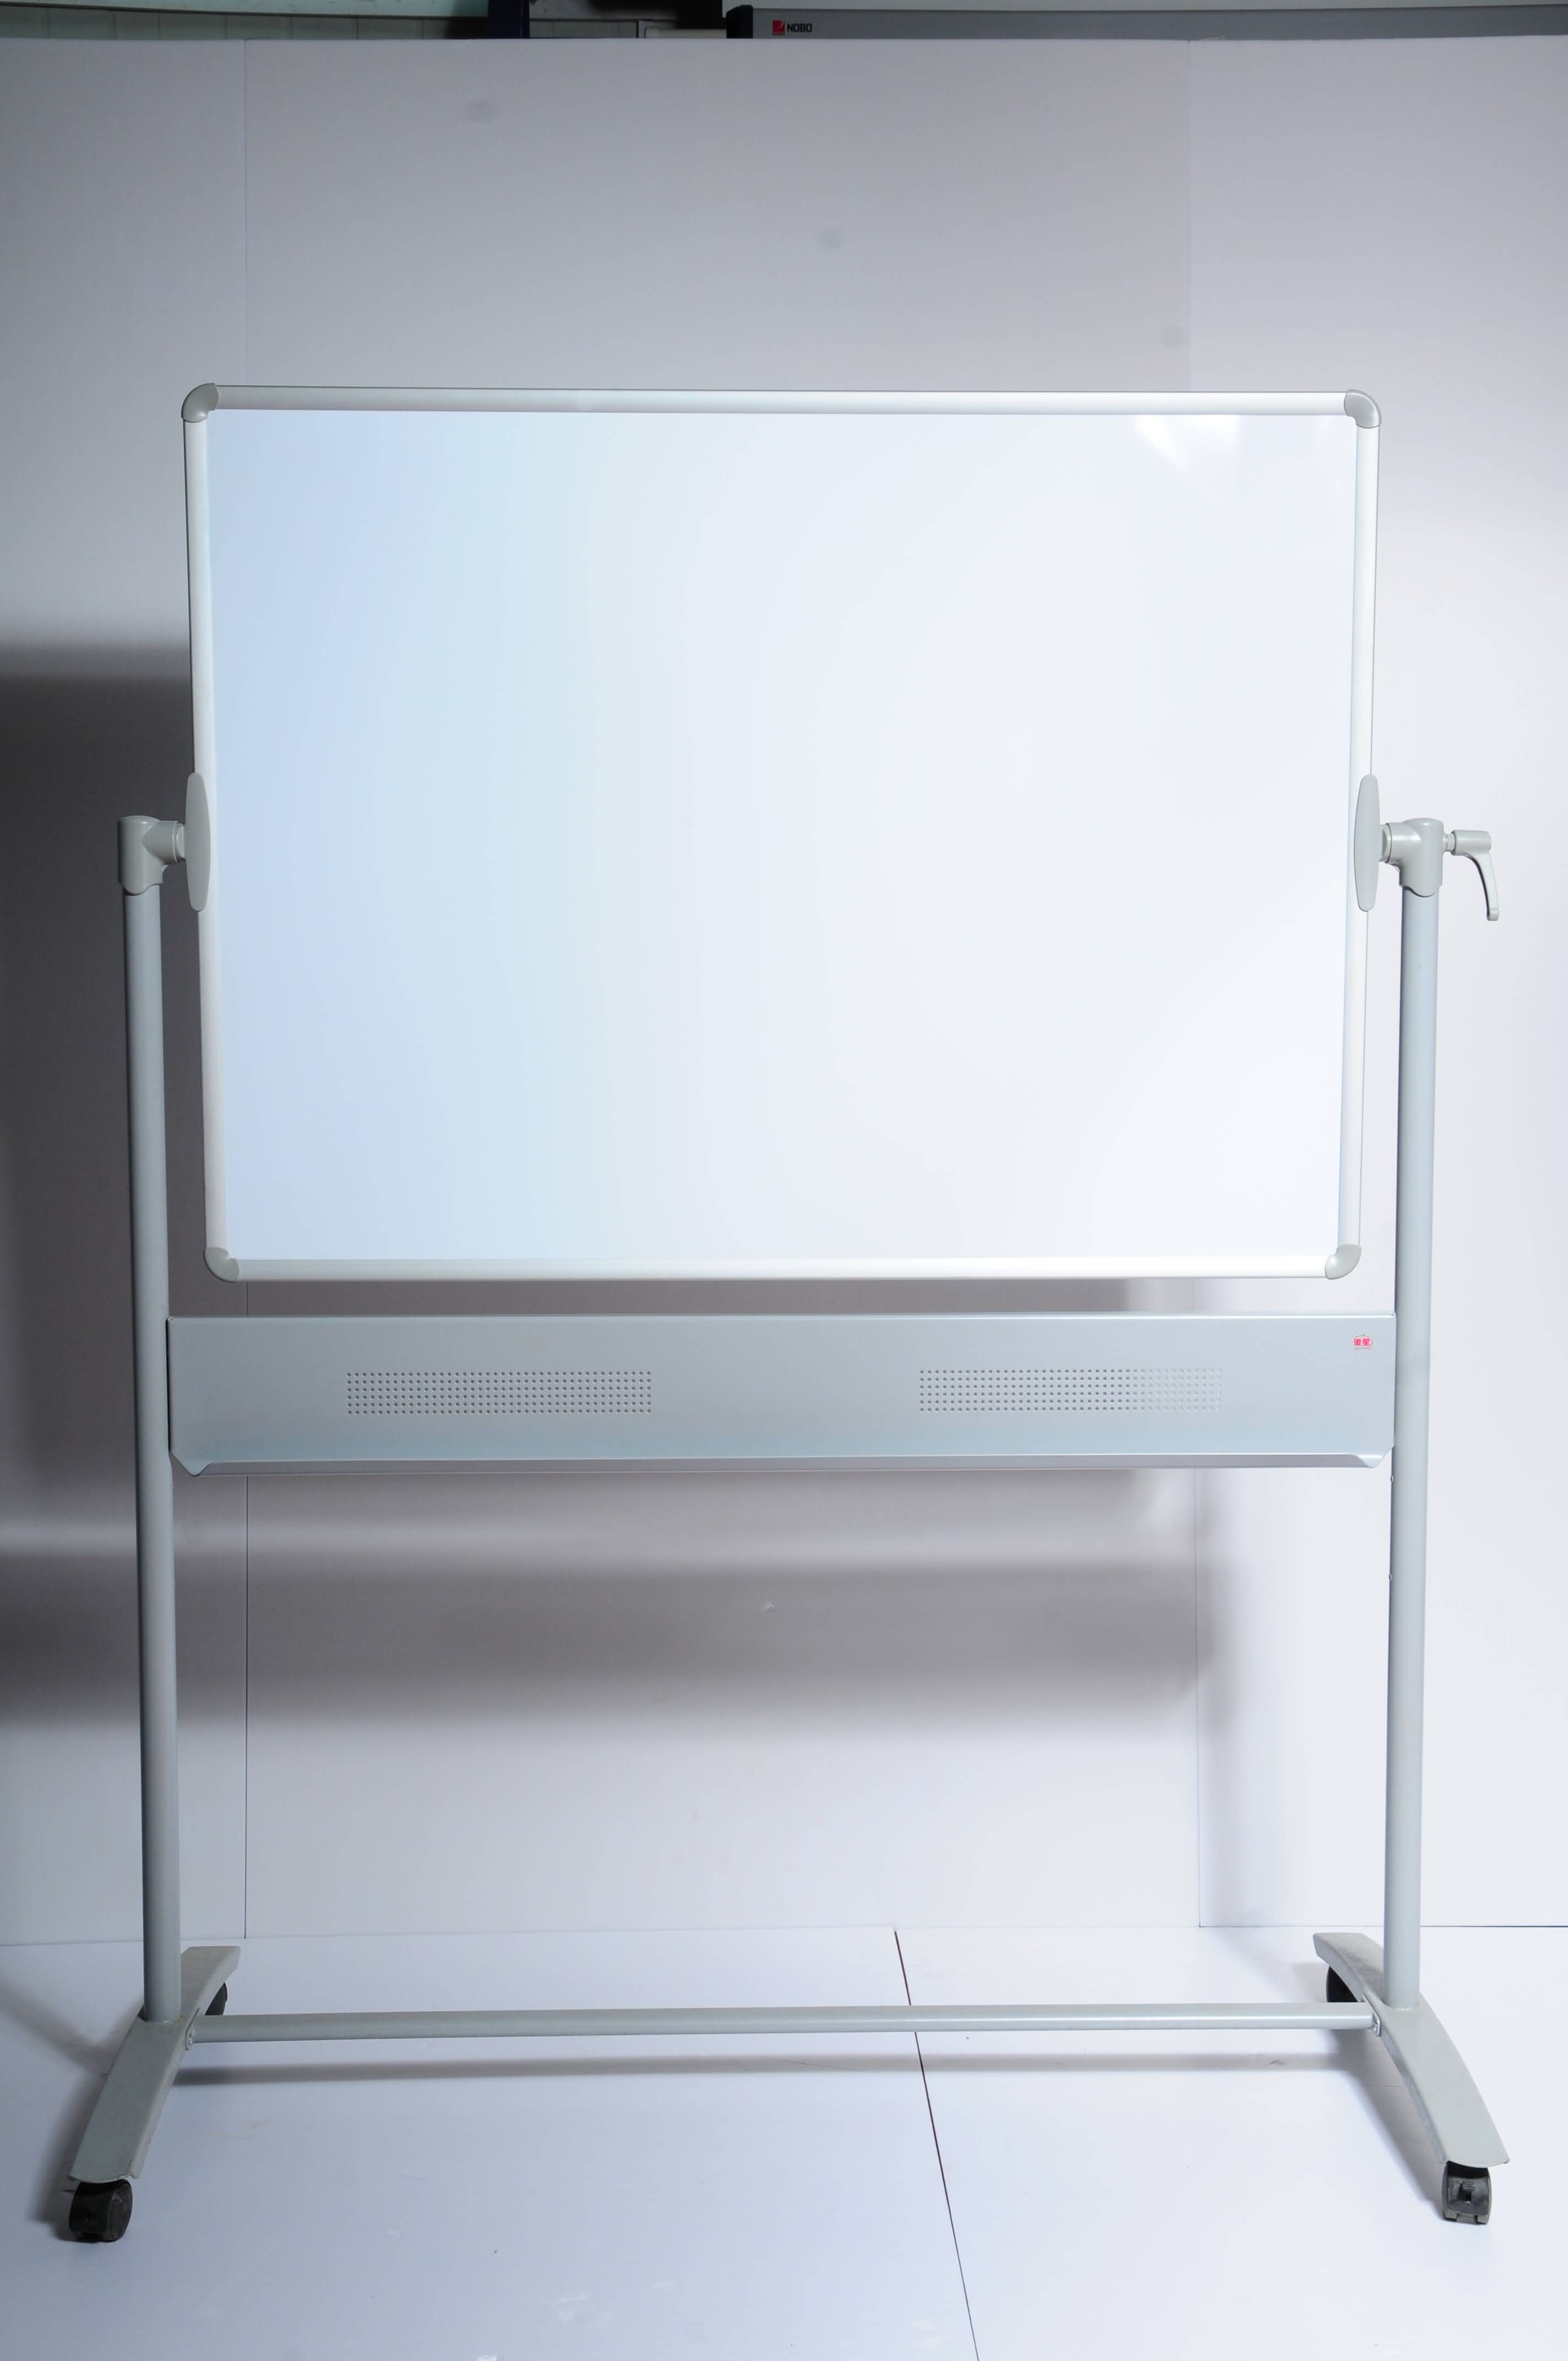 revoling white board,wrting board,lacquered steel,melamine or enamel coated surface